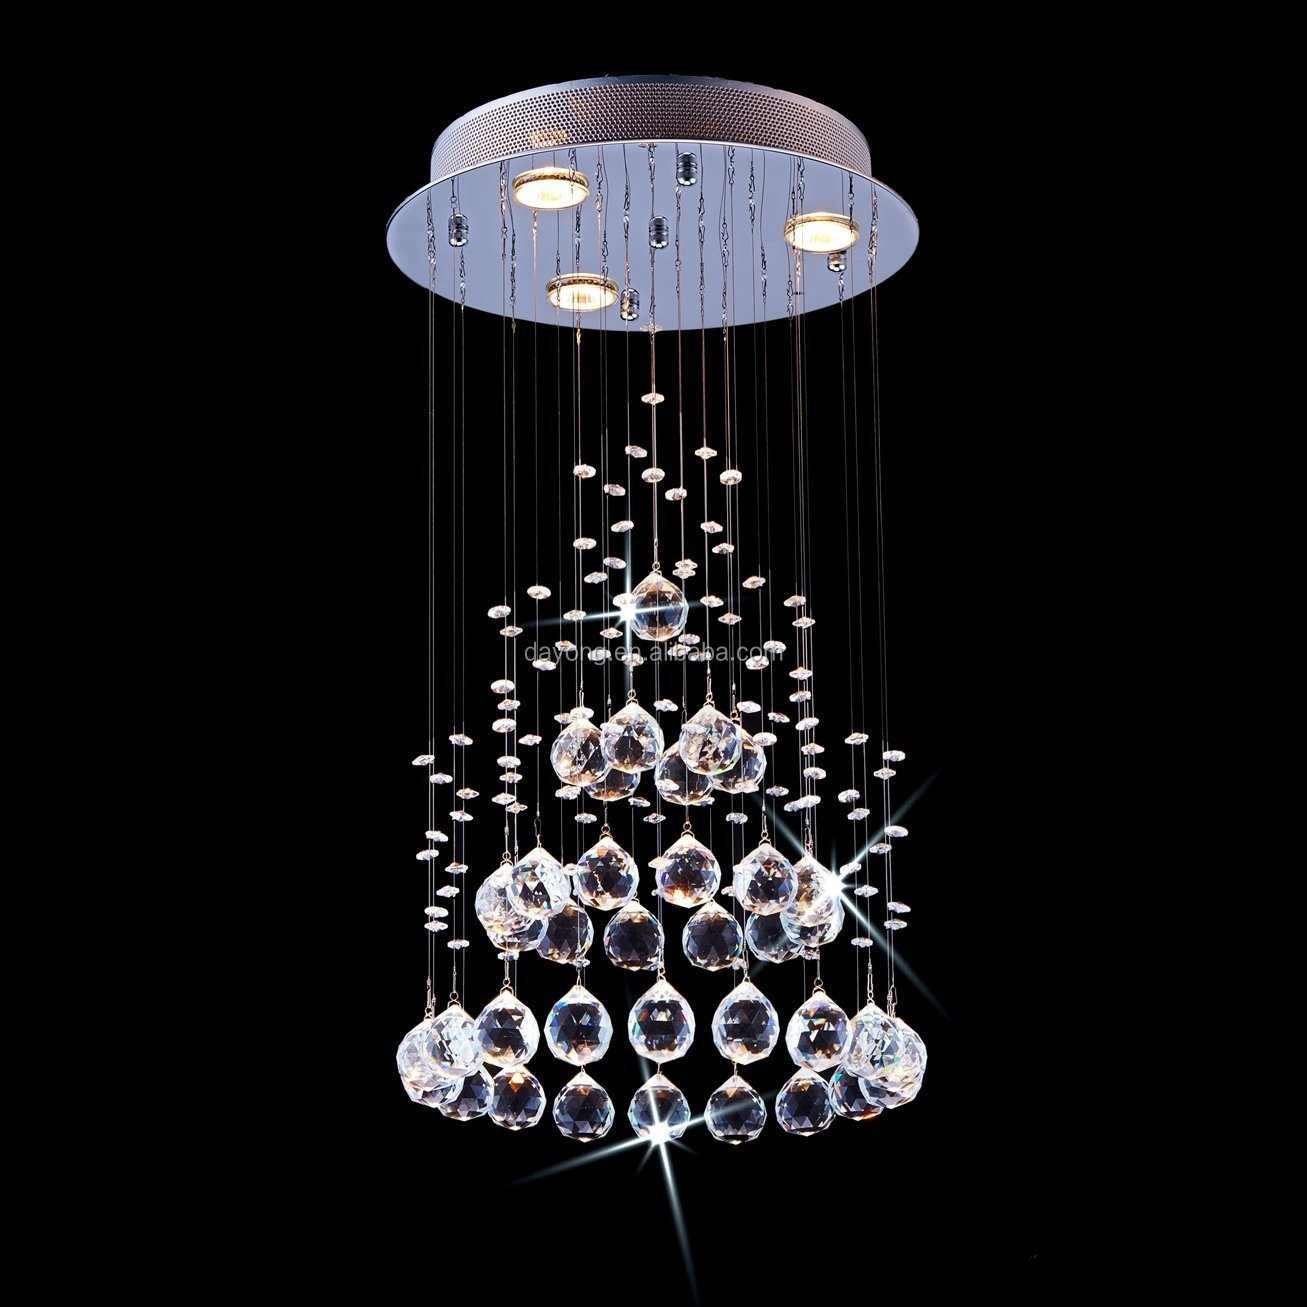 Modern Egypt Asfour K9 Crystal Ripples Raindrop Chandelier Lighting